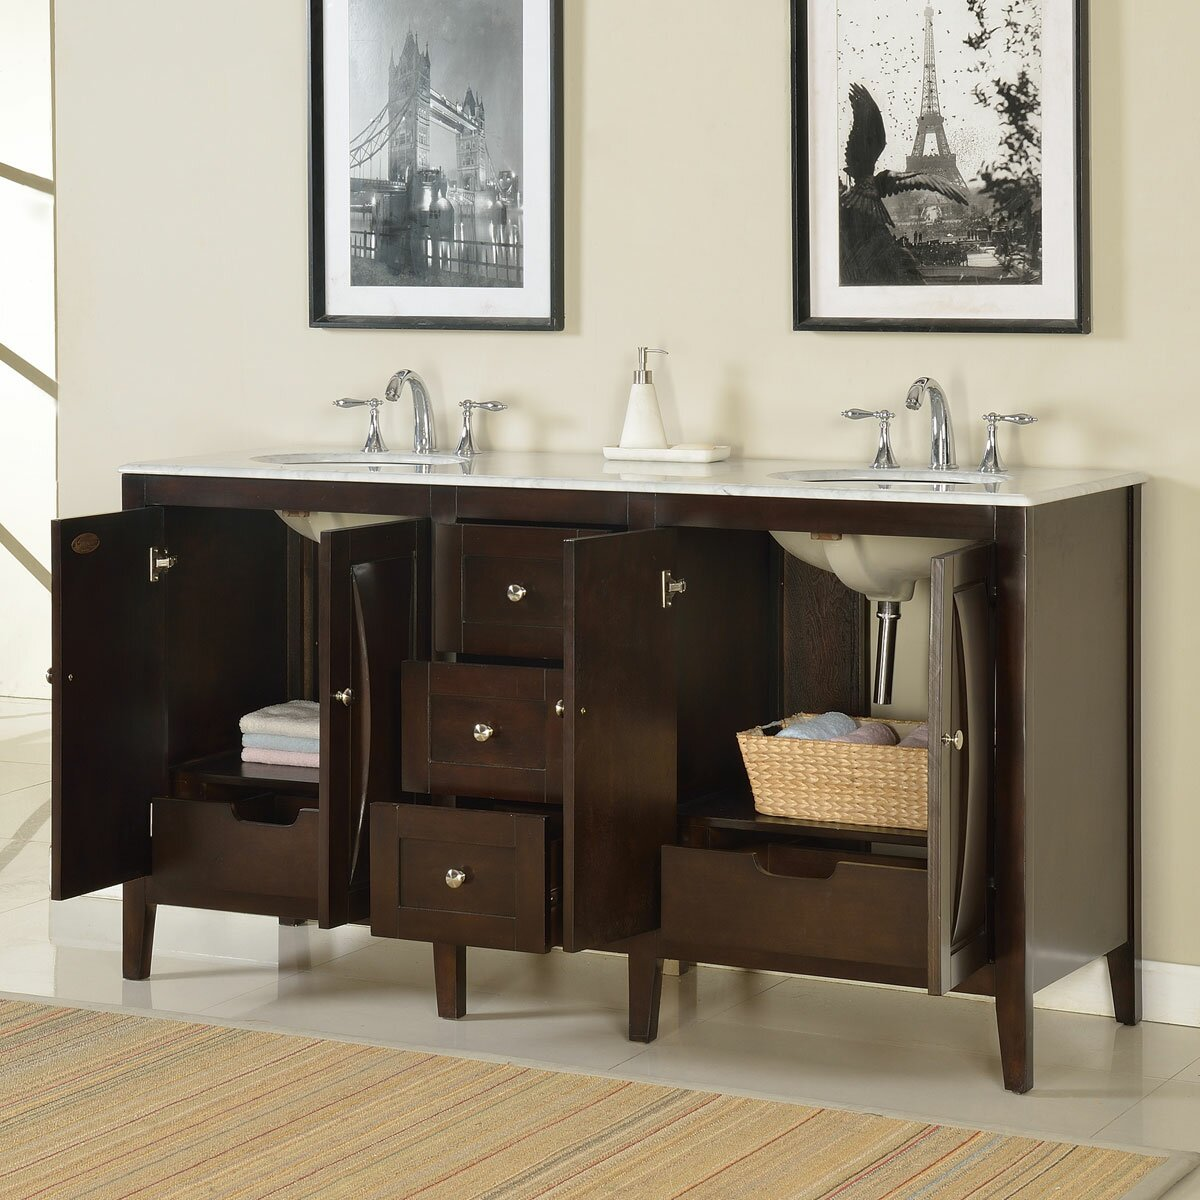 silkroad exclusive 68 double bathroom vanity set reviews wayfair. Black Bedroom Furniture Sets. Home Design Ideas